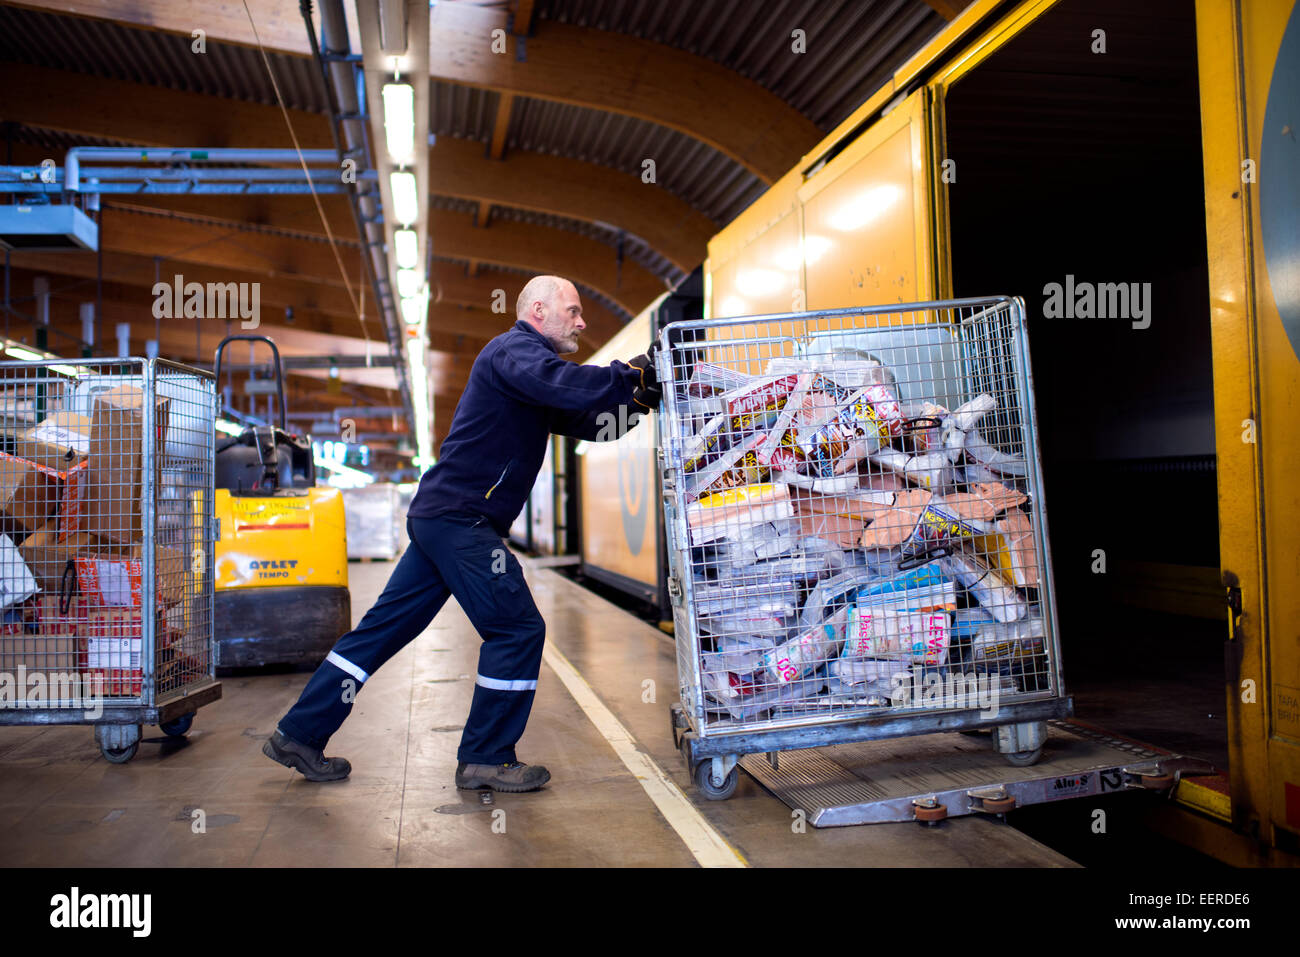 letter and packages sorting transport at Tomteboda, loading wagon, boxcar - Stock Image